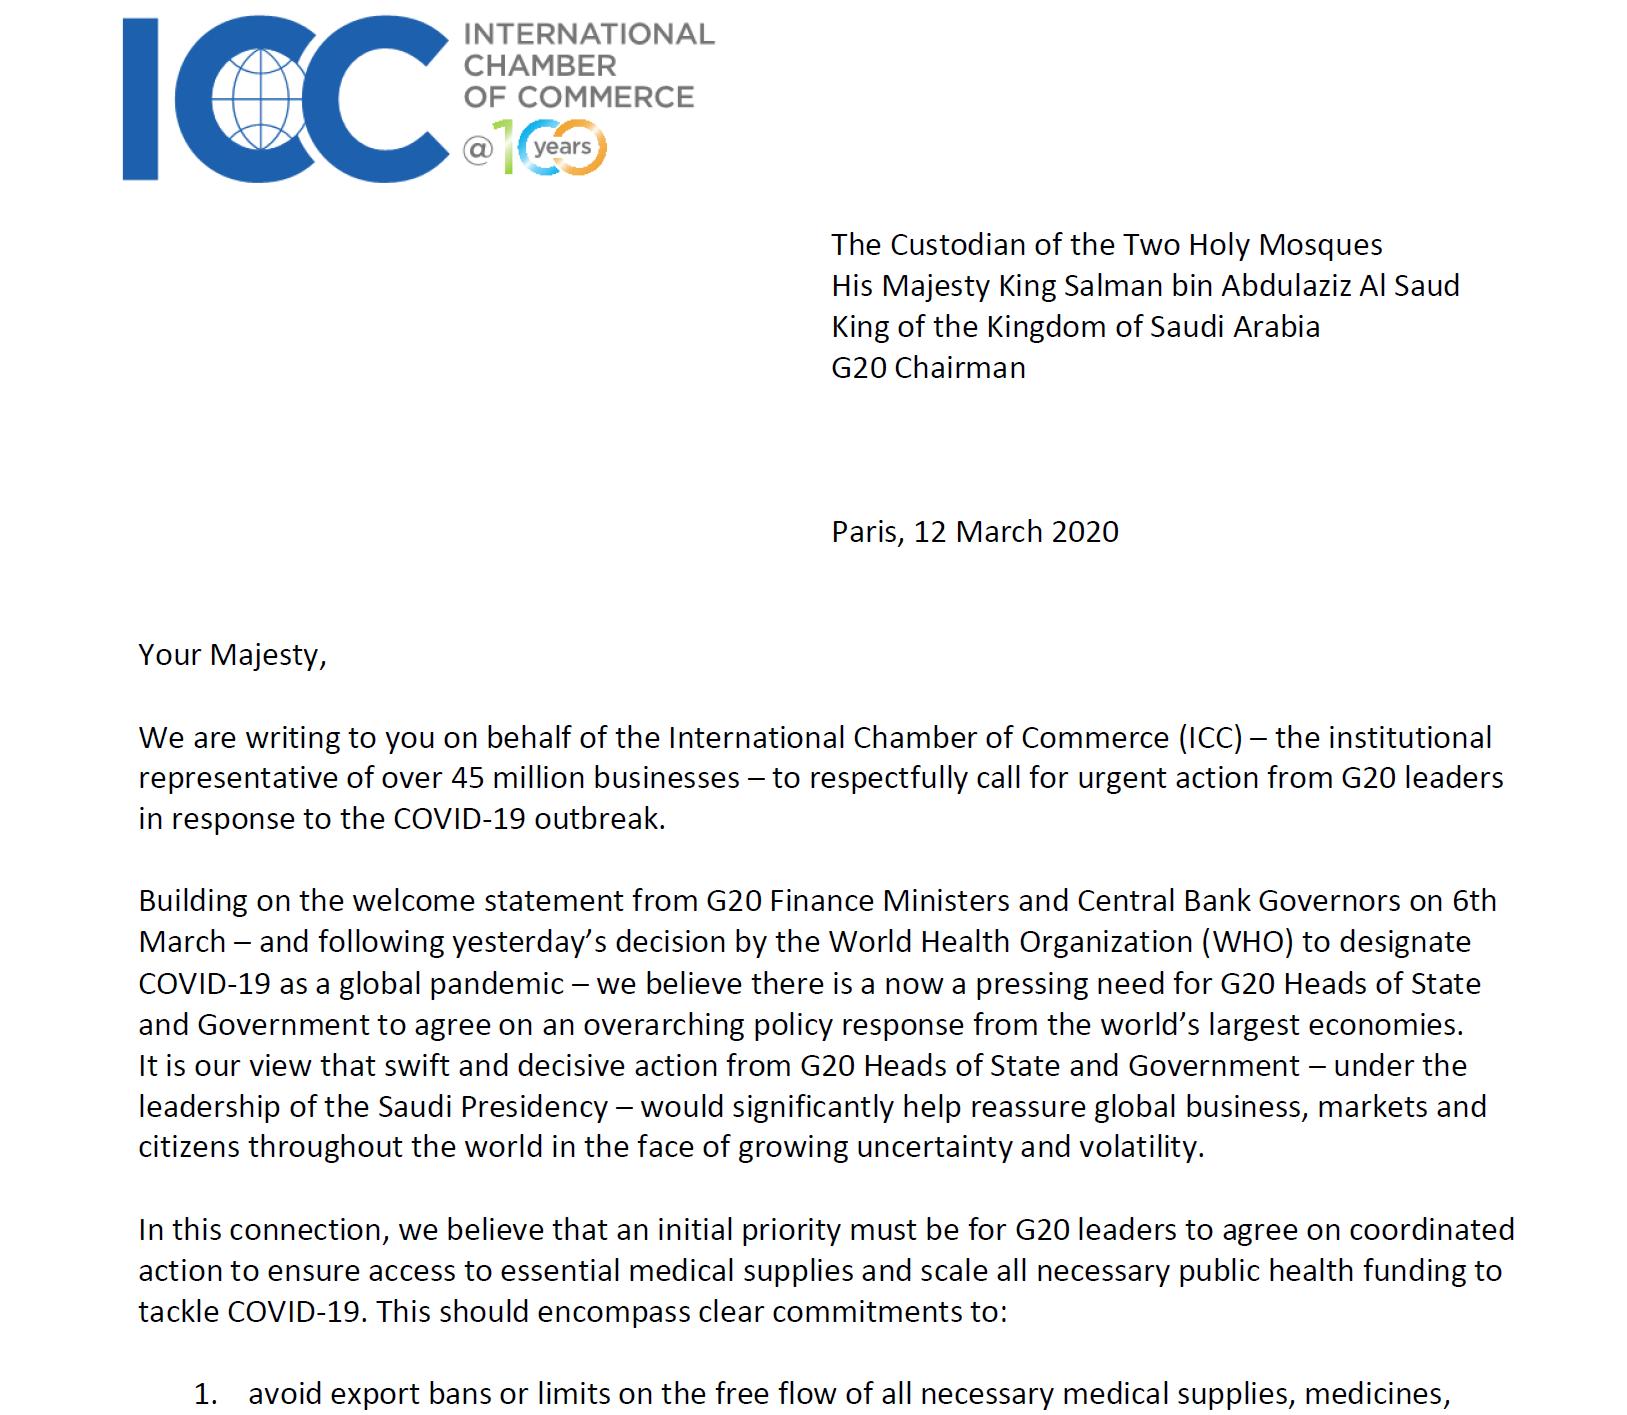 ICC Calls For Urgent Action From G20 Leaders In Response